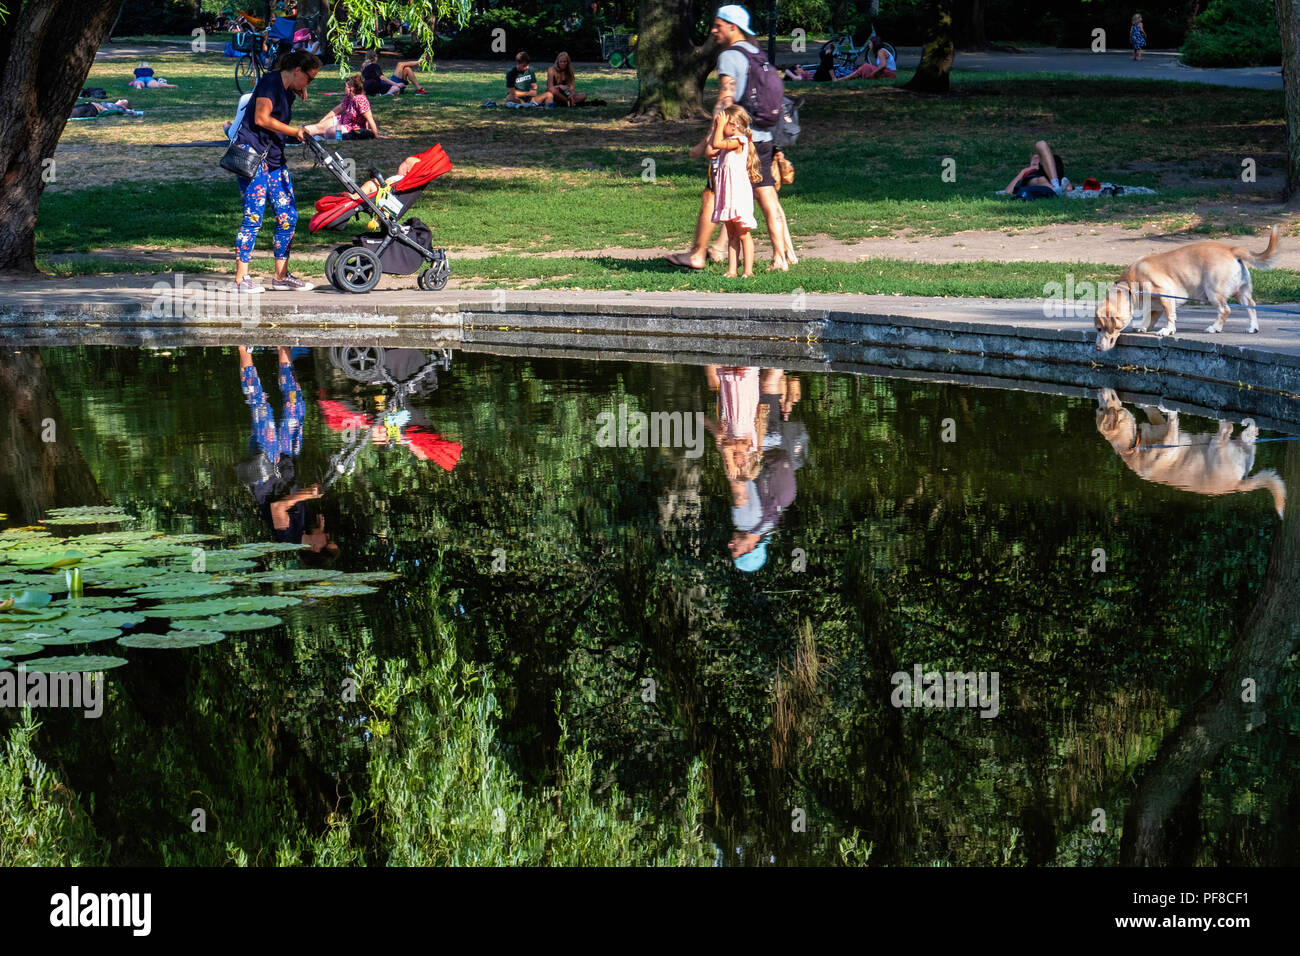 Berlin,Mitte, Weinbergspark, People,children & dog relax next to pond in the public park on a hot Summer evening - Stock Image